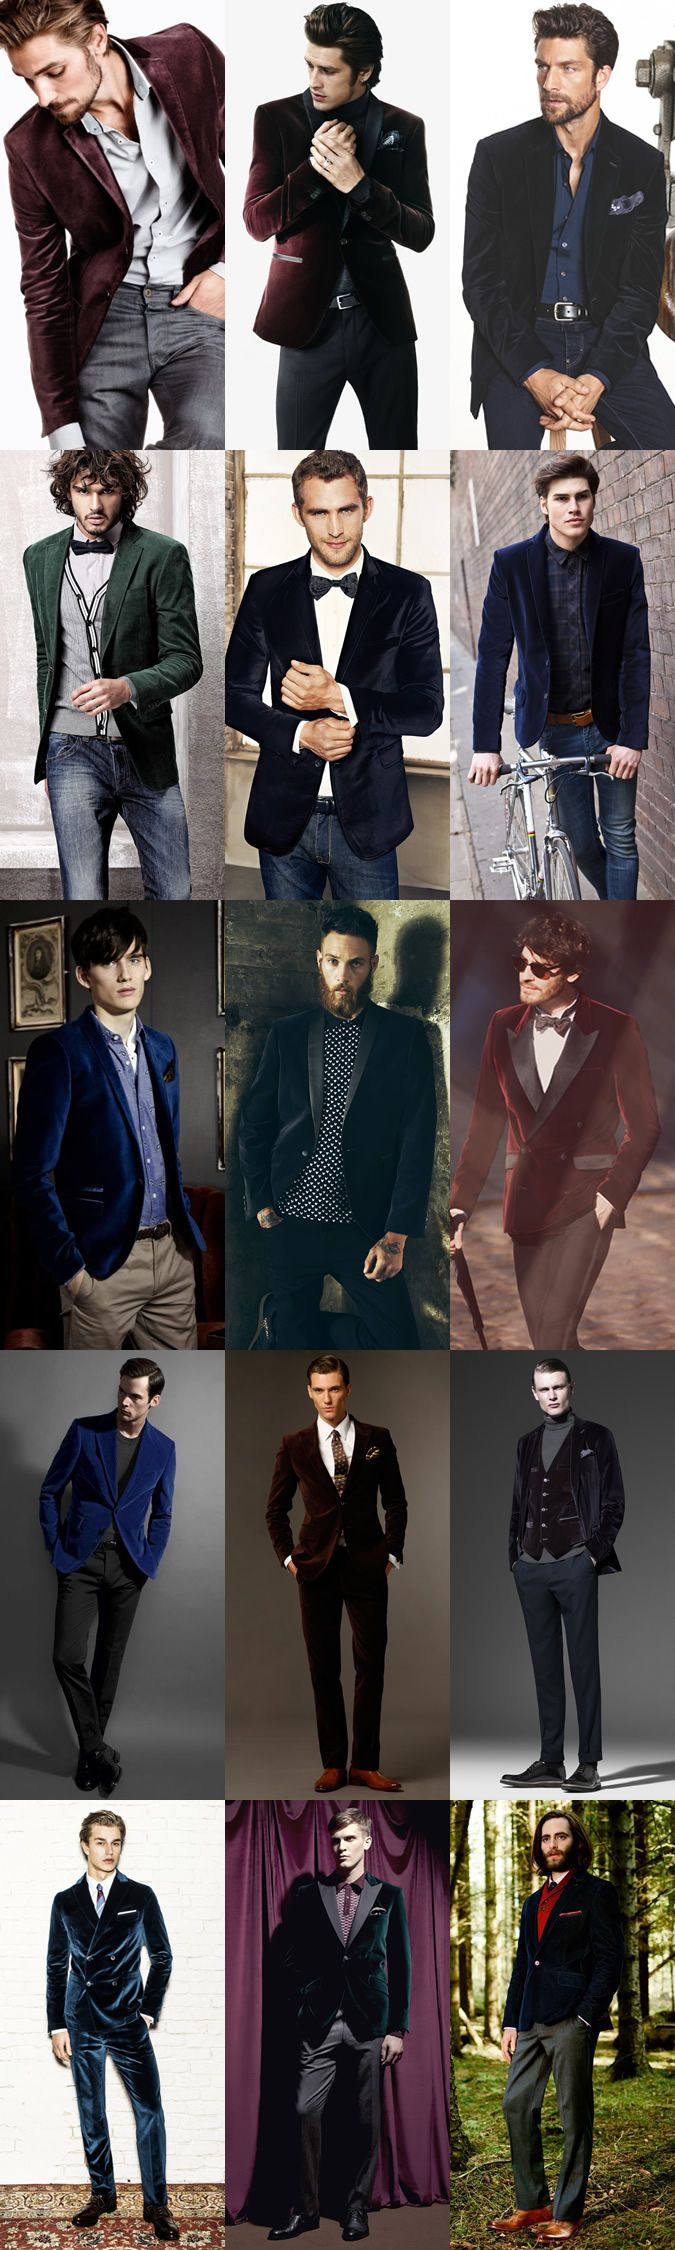 Men's Velvet Outfit Inspiration Lookbook. When your boyfriend has the jawline of a model, you kinda can't help but wanna dress him like one :)